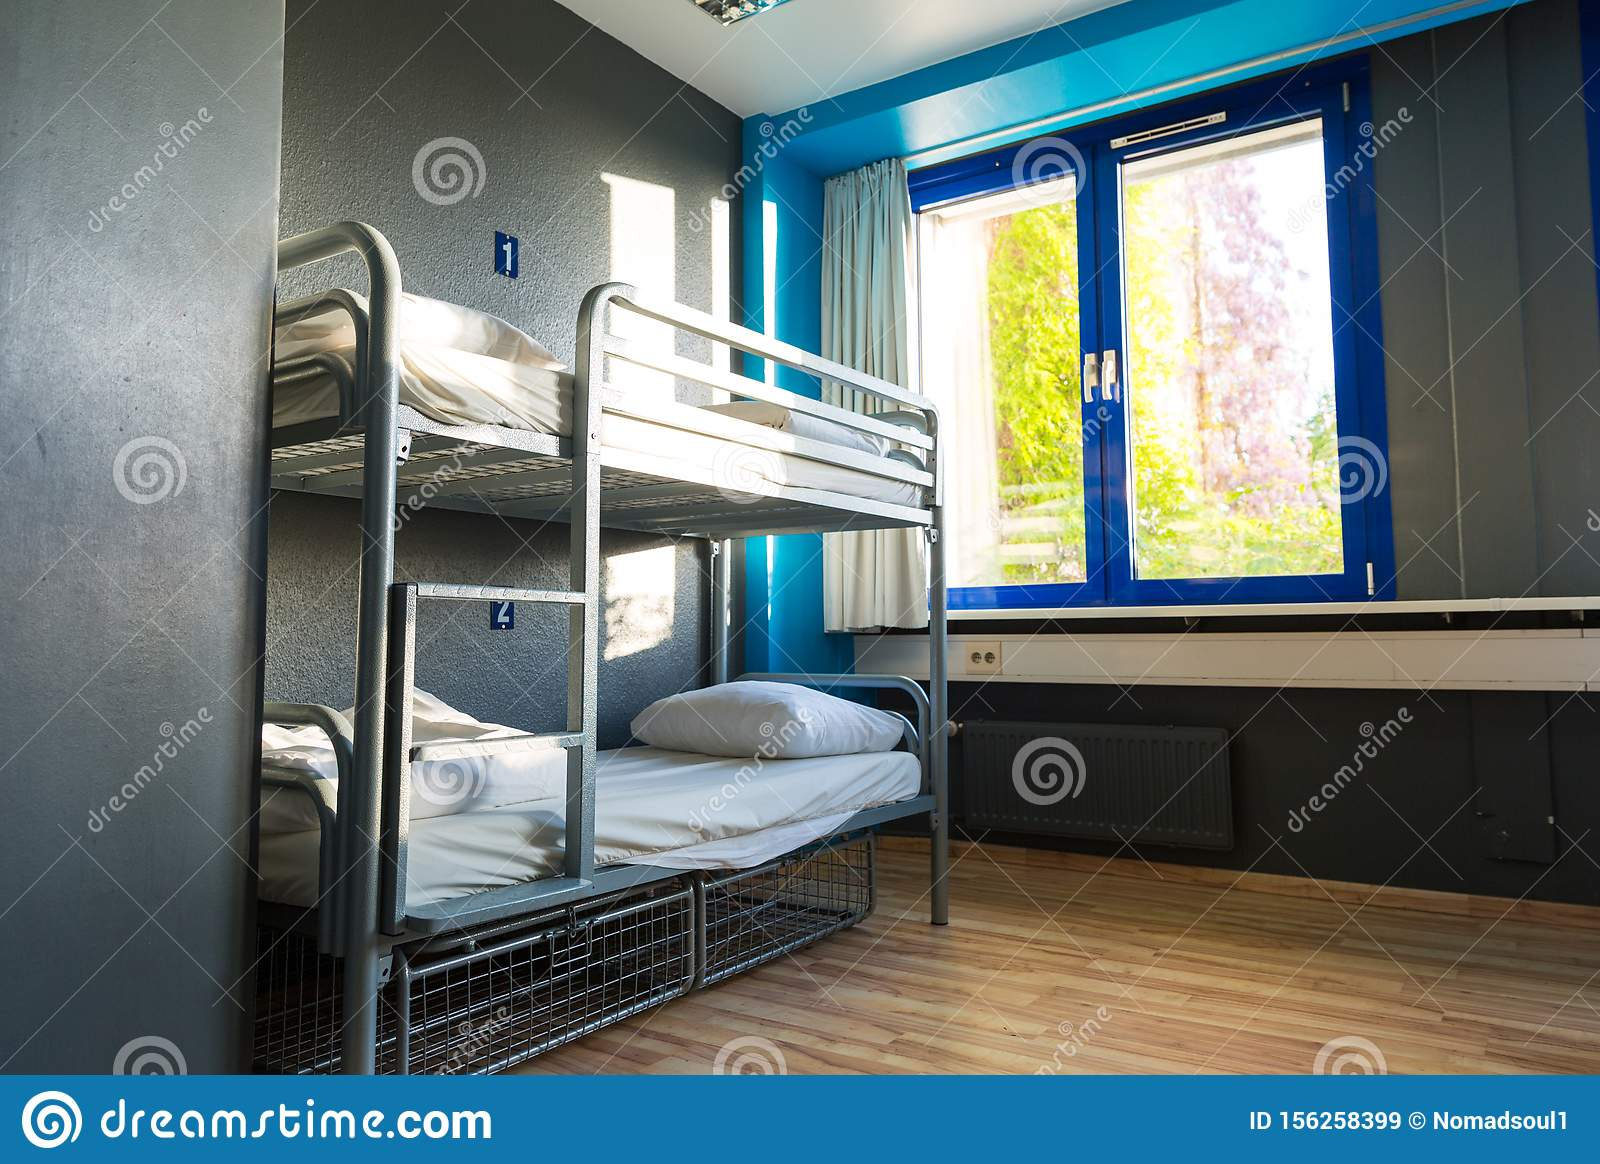 Picture of: Hostel Interior Metal Bunk Beds And Linen Nobody Stock Image Image Of Campus Modern 156258399